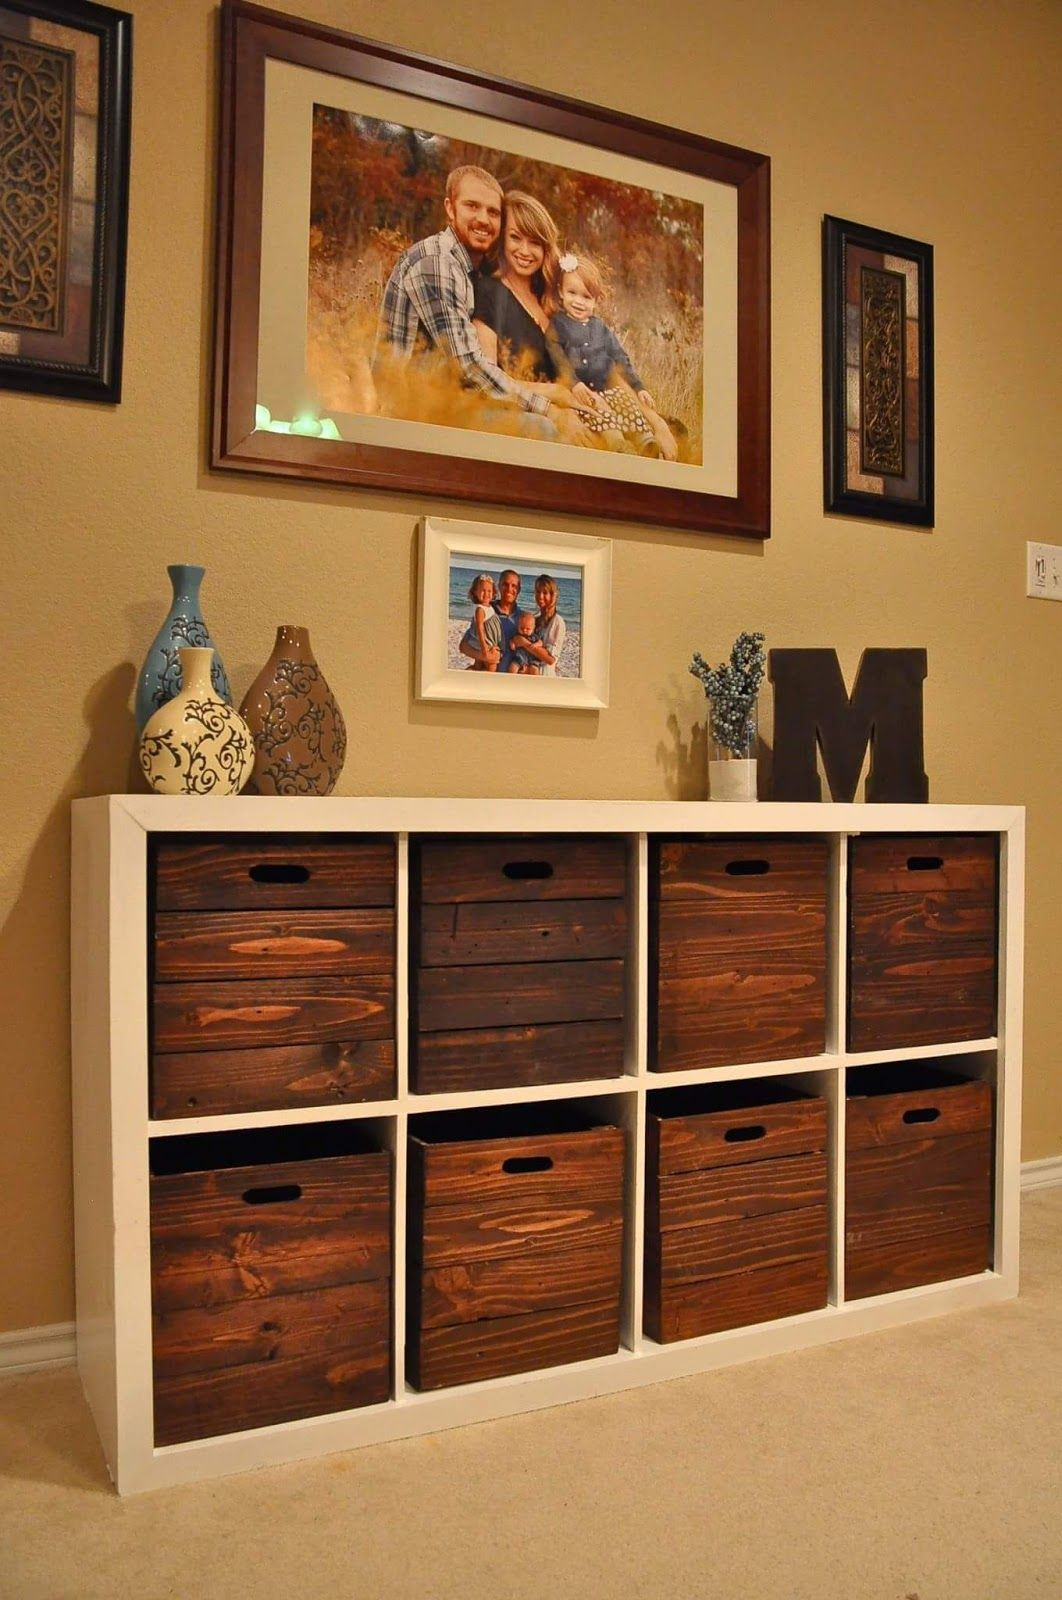 diy storage and wooden crates i am in love with this i wonder if rh pinterest com DIY Wooden Storage Cubes Cube Storage Shelves and Bookcases